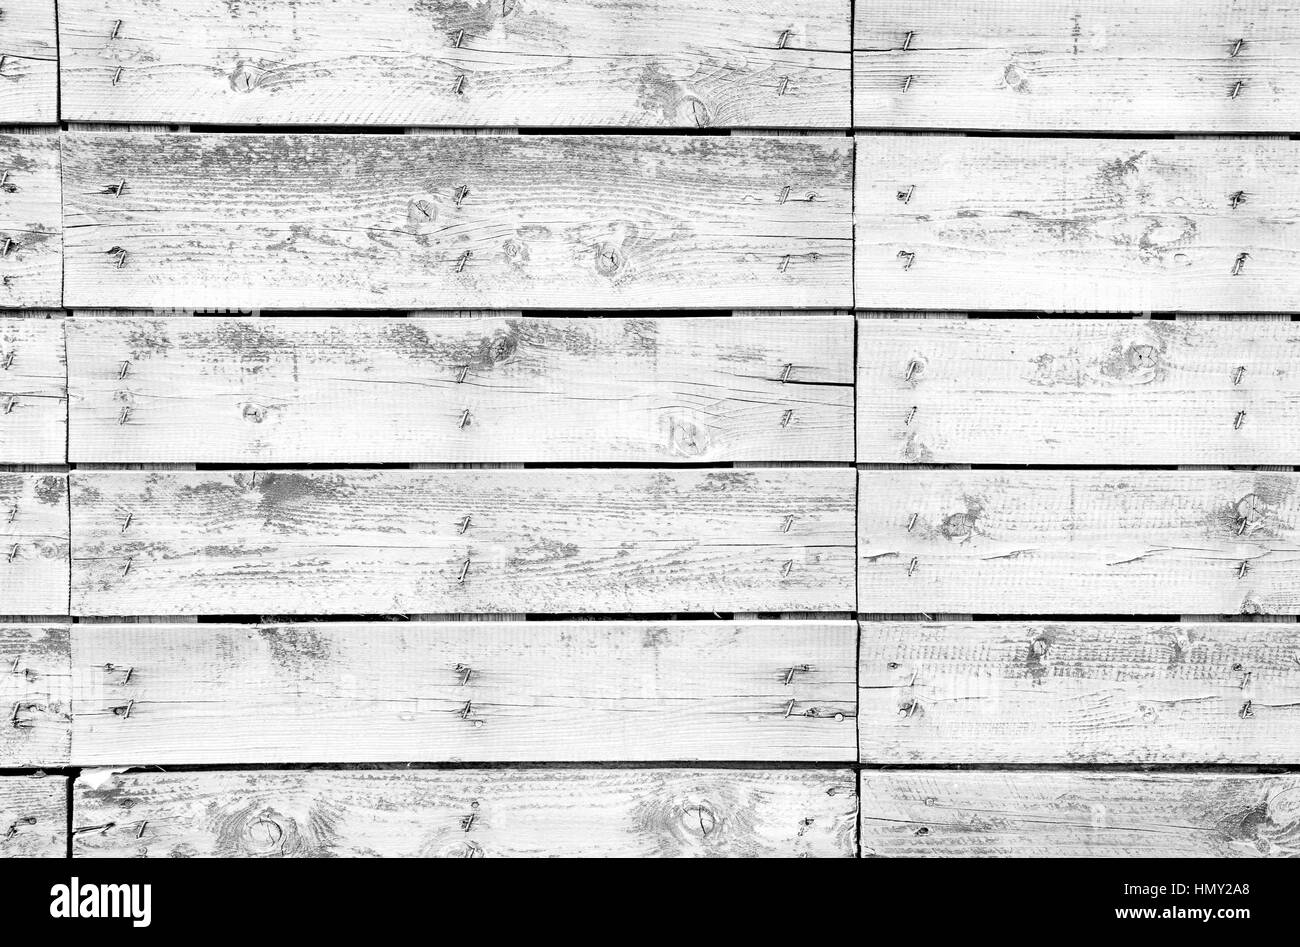 Old wooden planks texture with weathered white paint - Stock Image